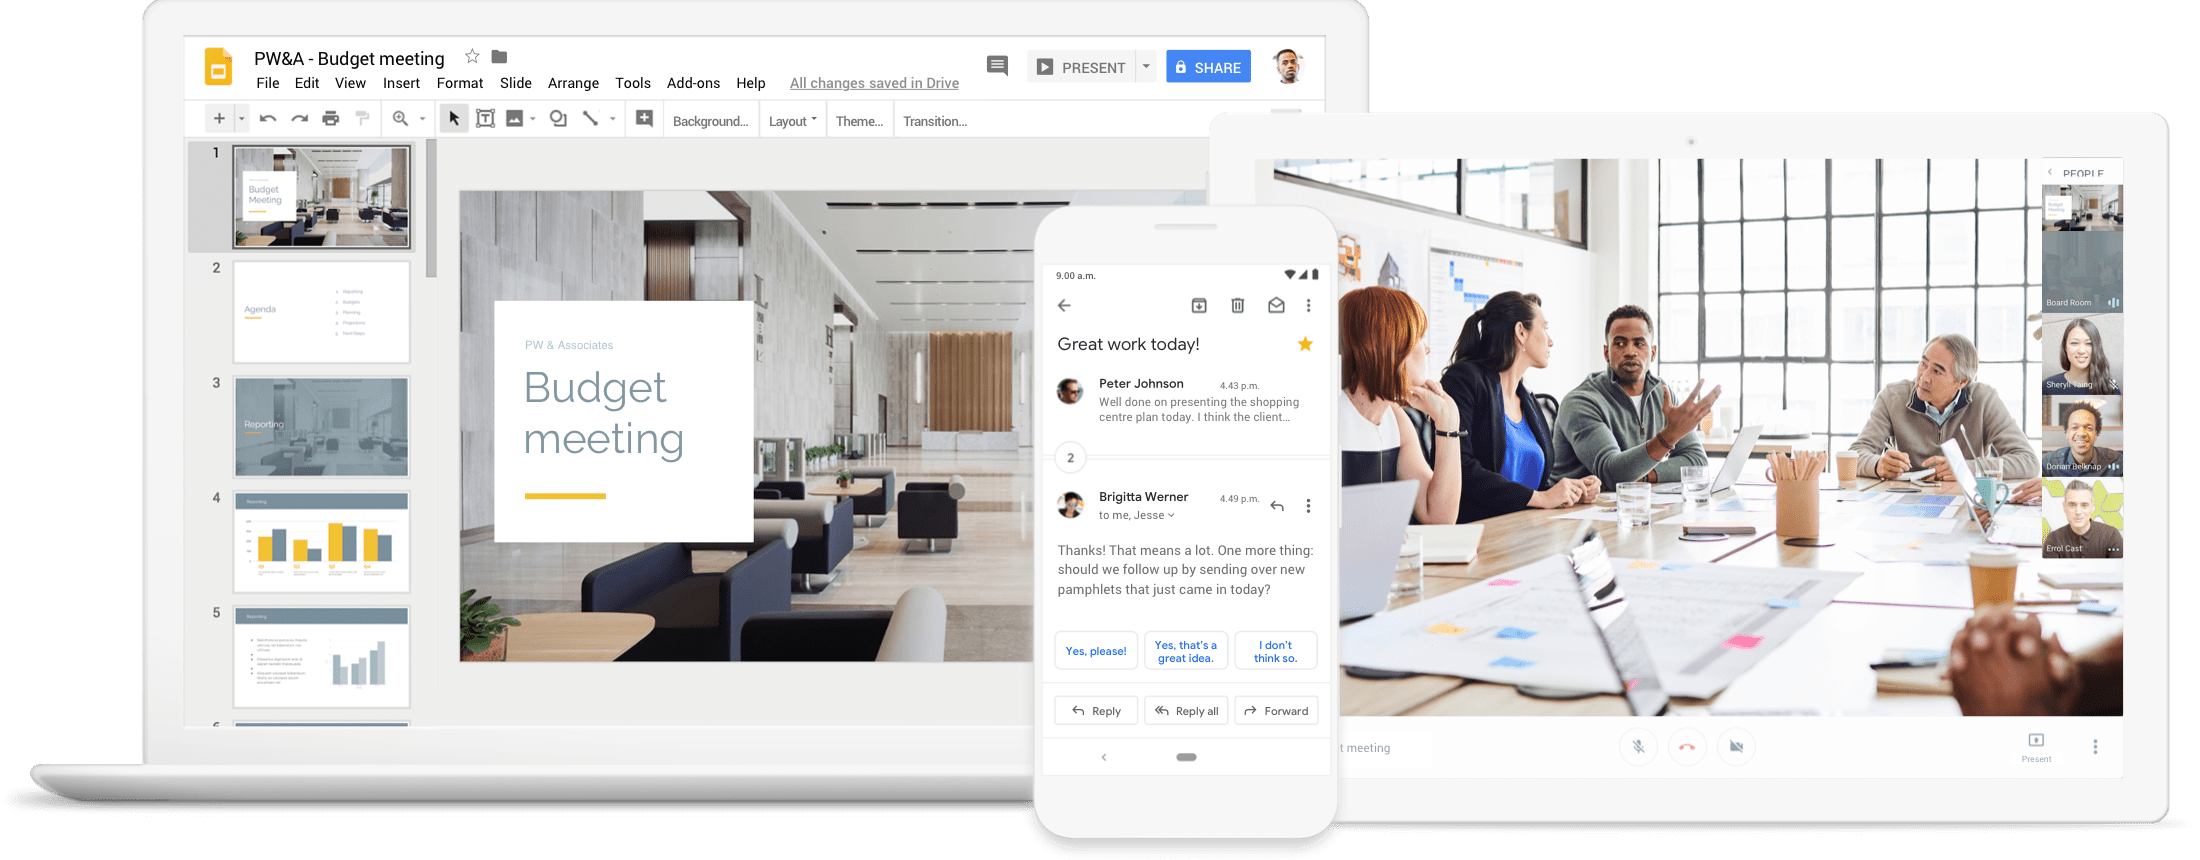 G Suite products